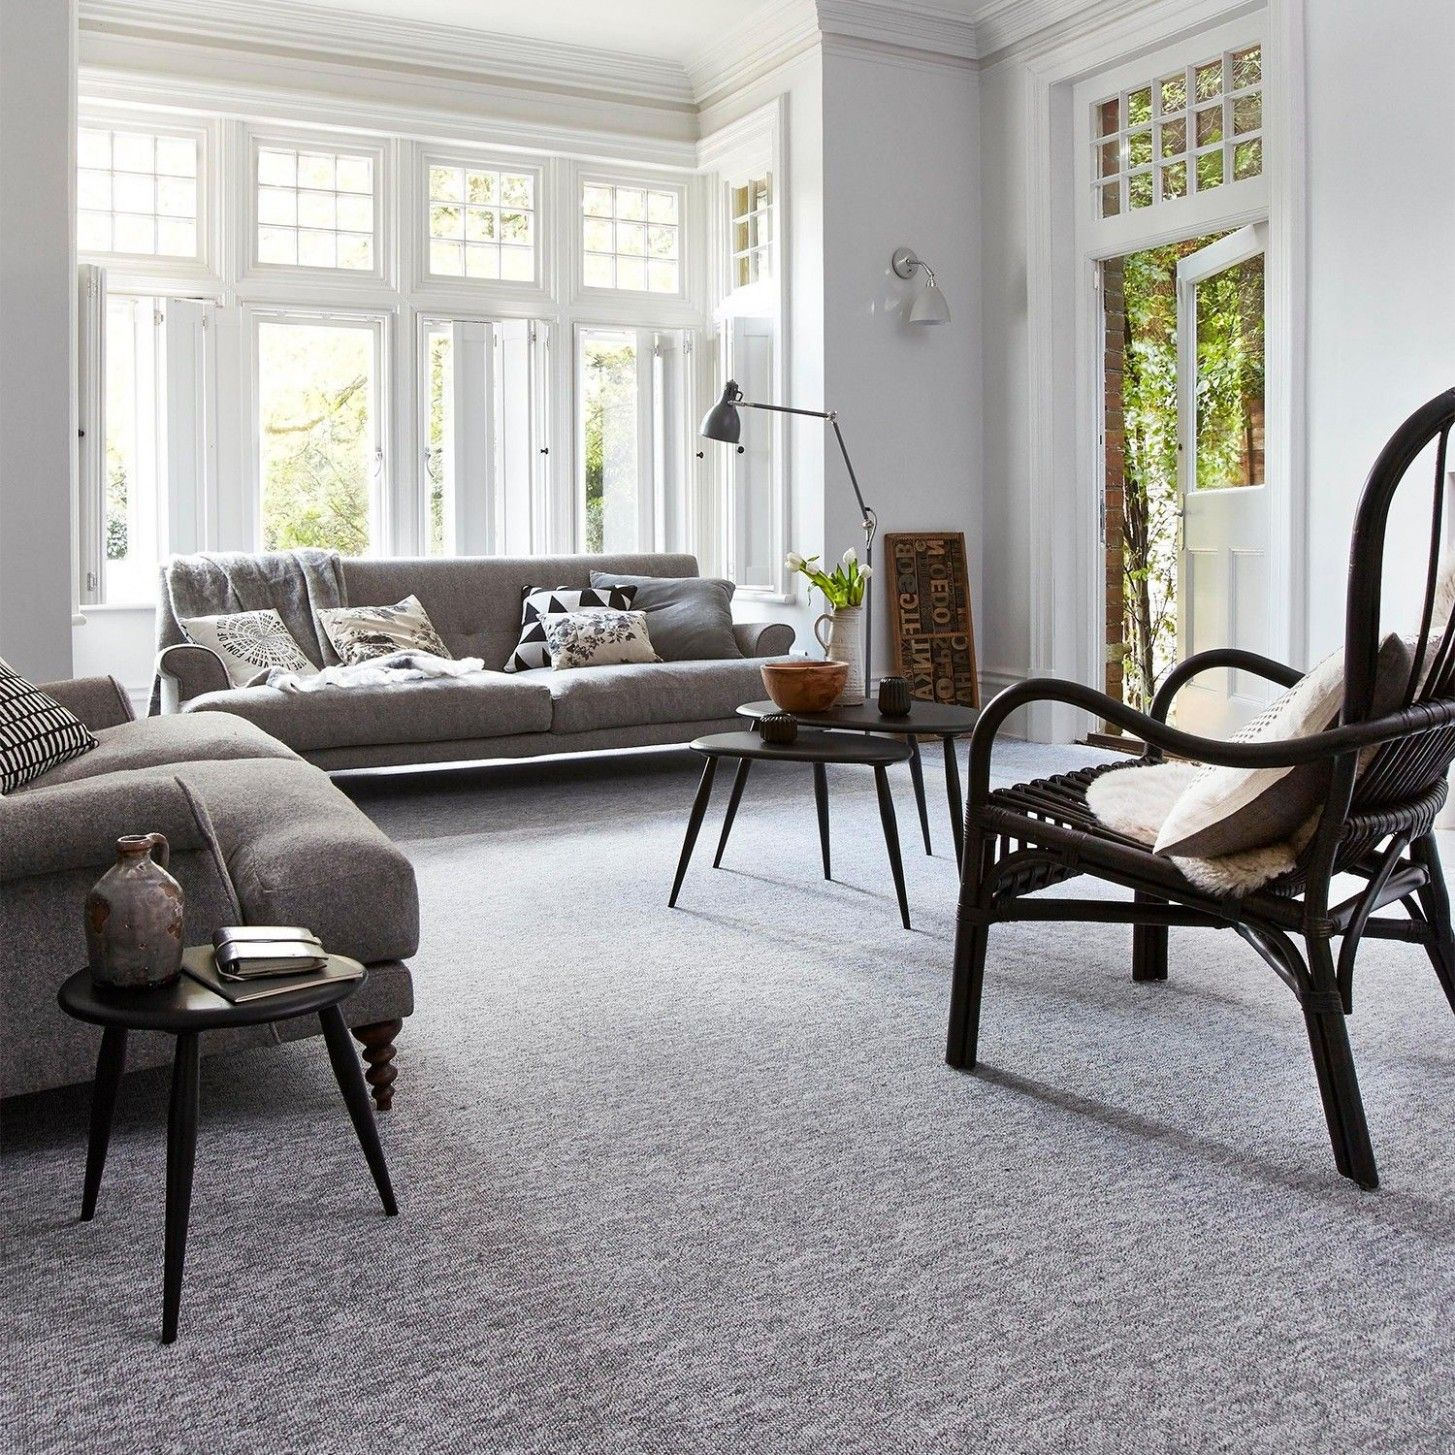 Living Room With Grey Carpet Ideas Living Room Carpet Grey Carpet Living Room Home Carpet